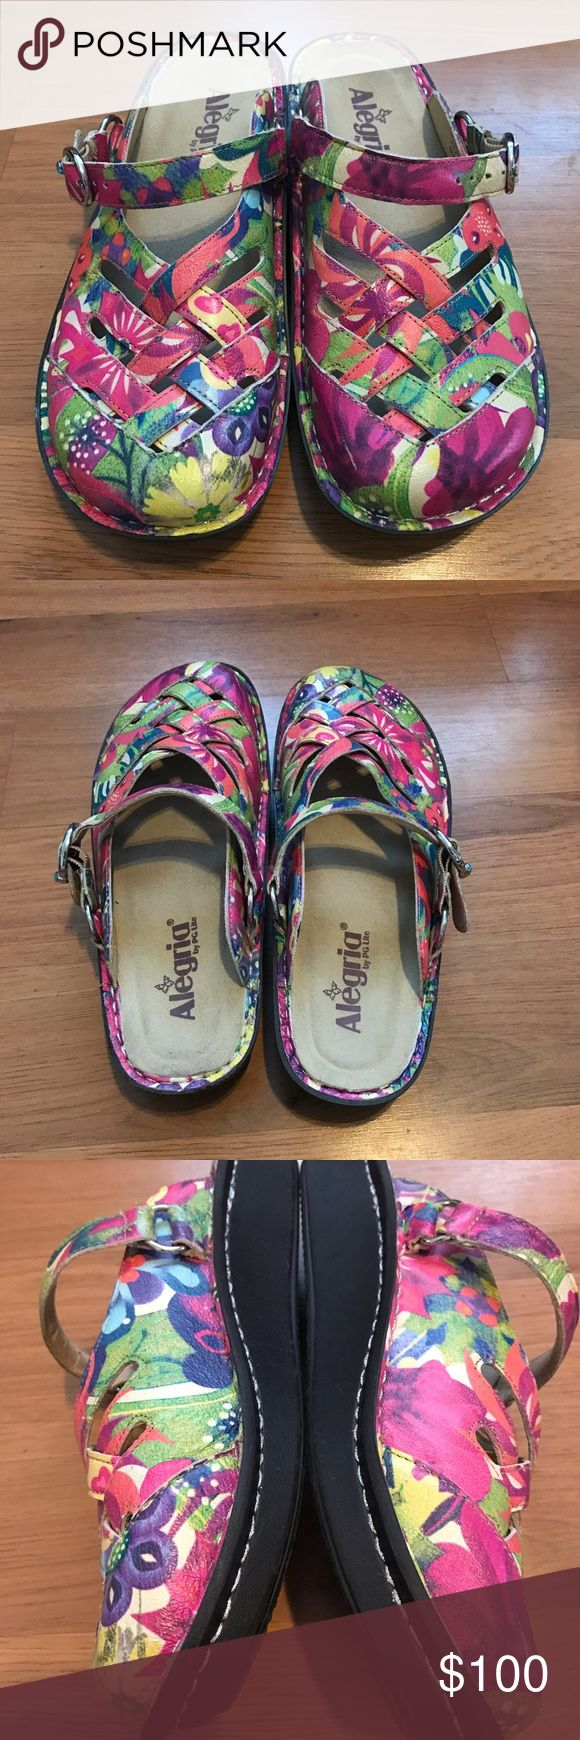 Algeria Sandals Only worn a handful of times! Colorful and Comfortable! Size 38. Alegria Shoes Sandals